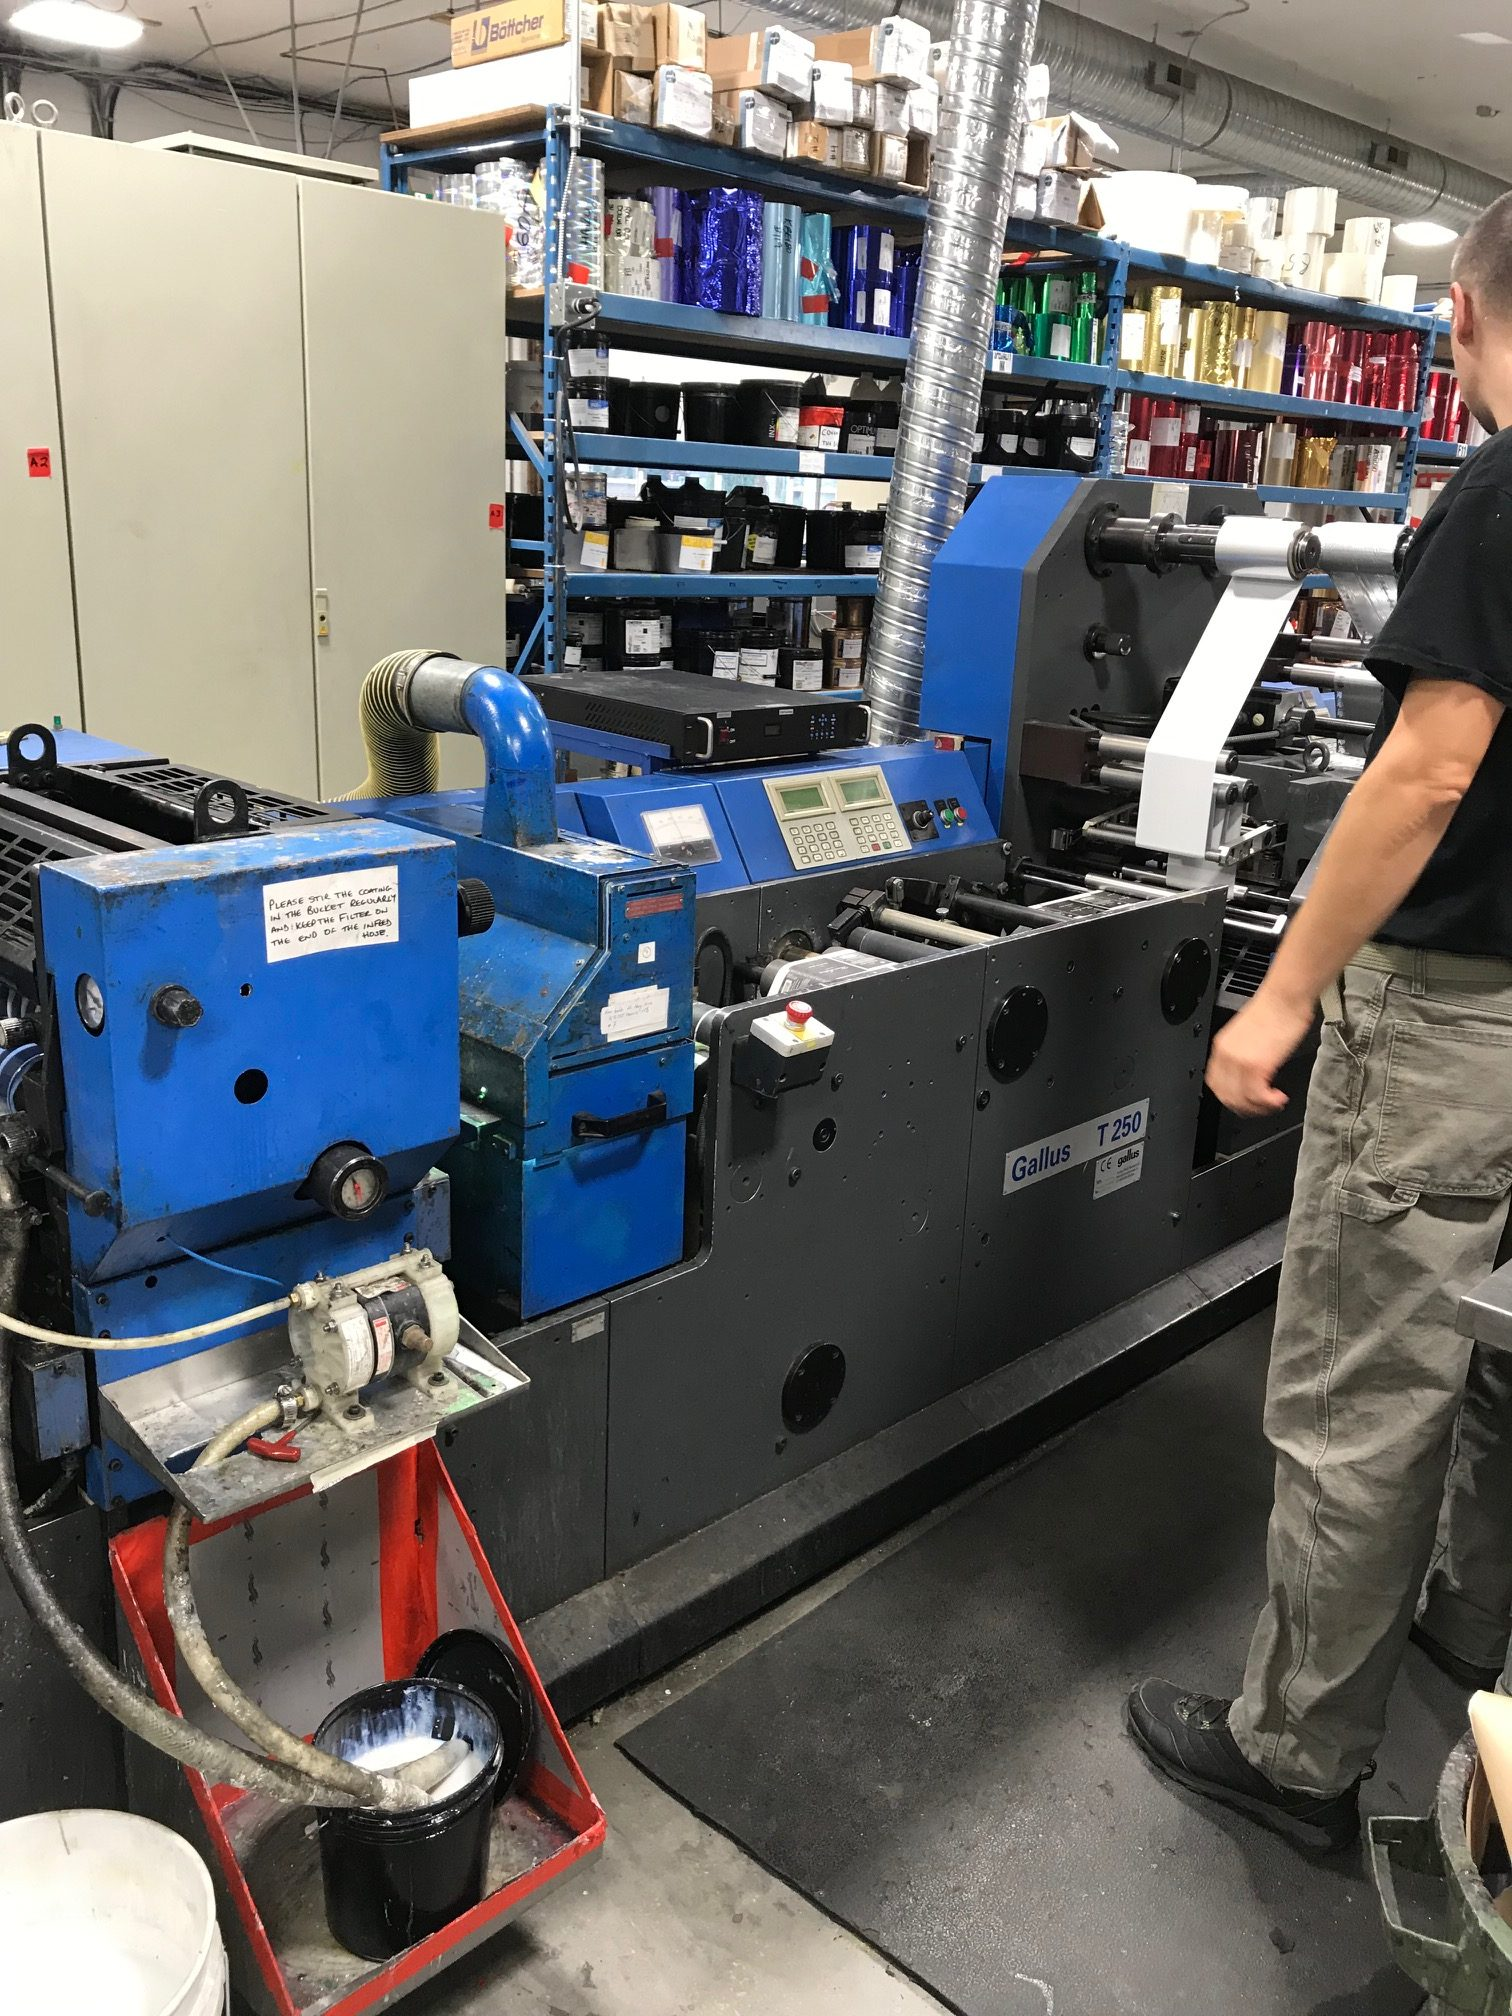 Gallus TCS250 - Used Flexo Printing Presses and Used Flexographic Equipment-6